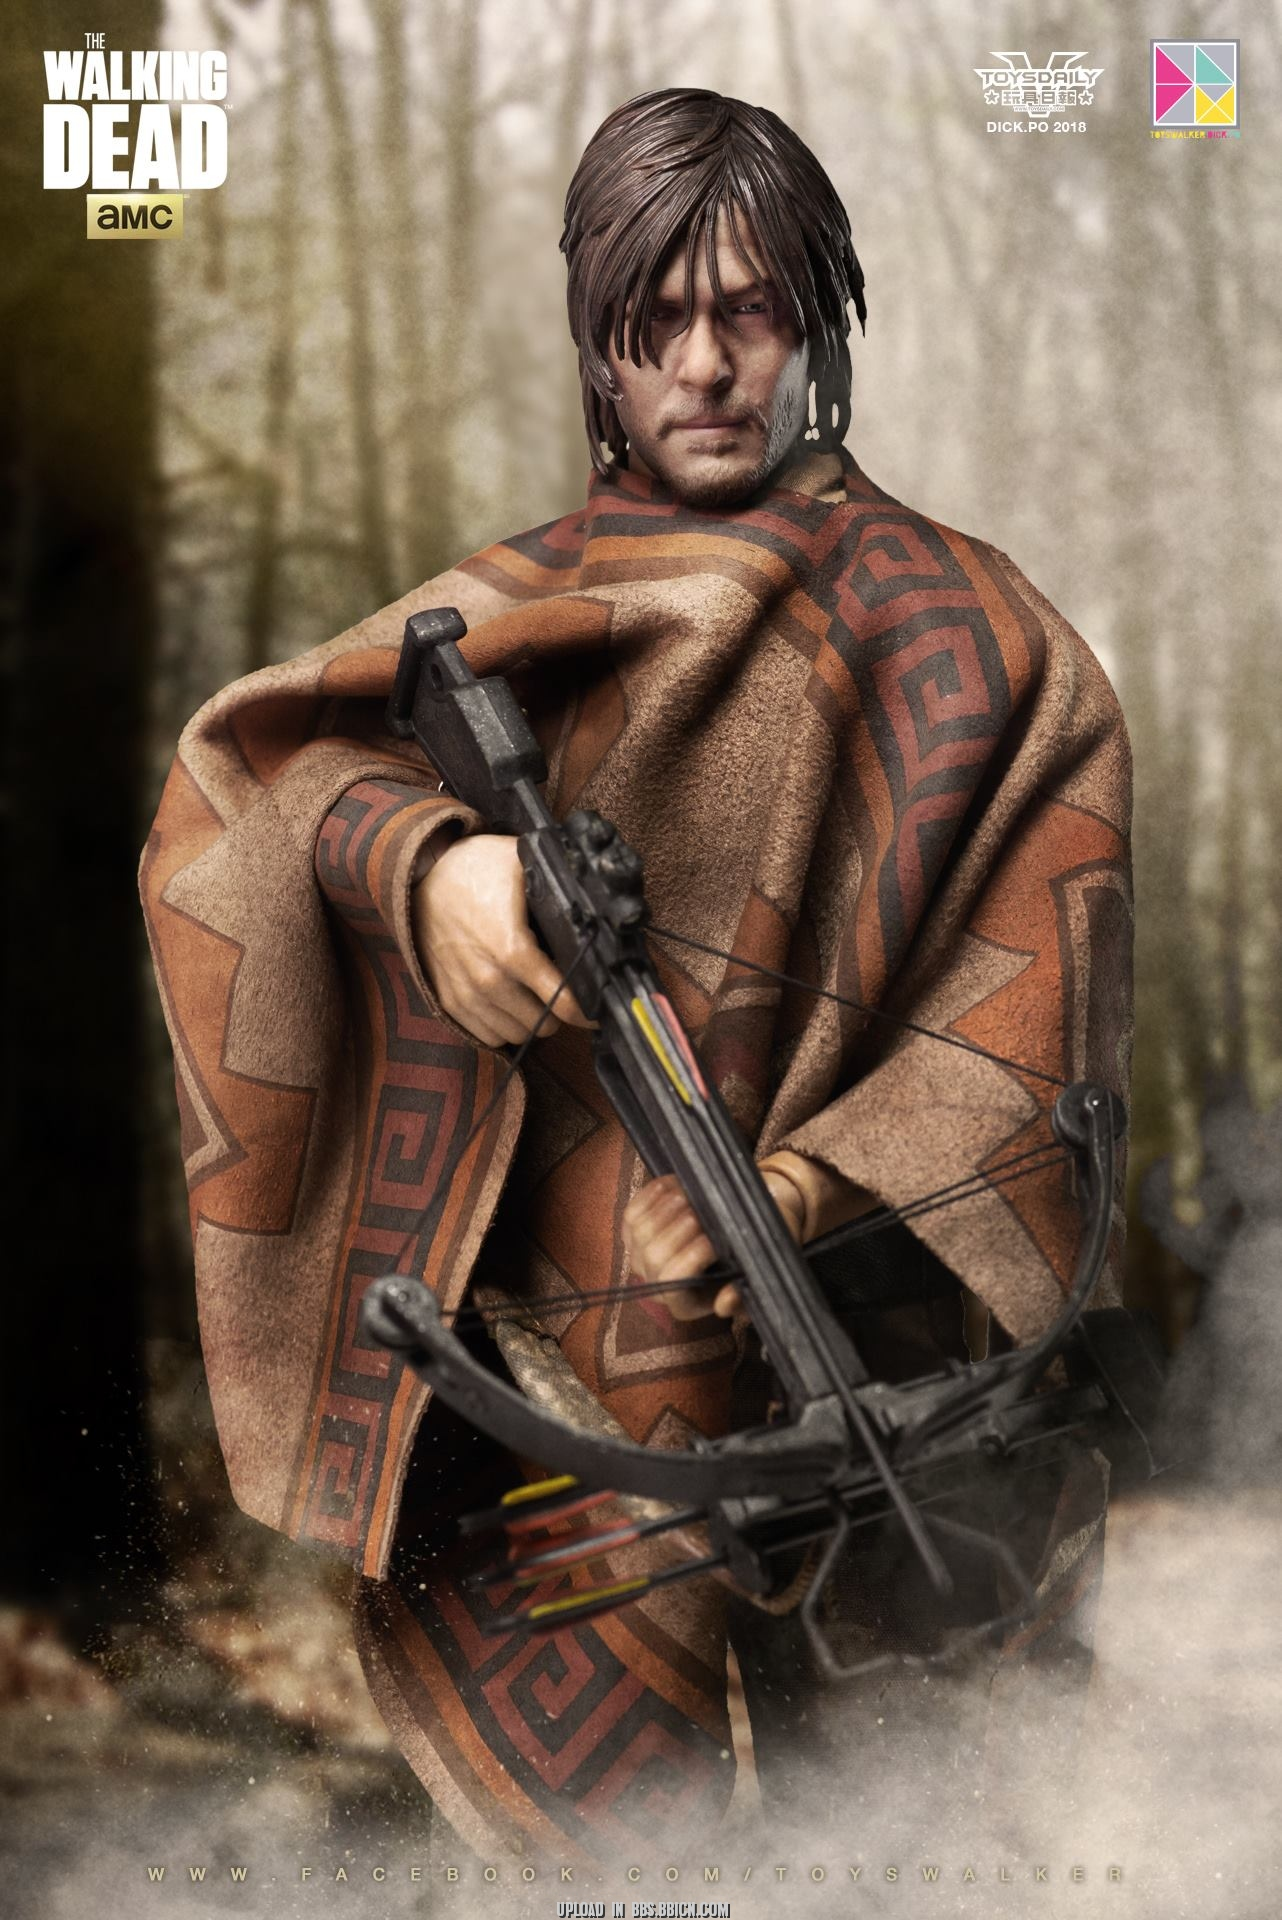 The Walking Dead Daryl Dixon9.jpg